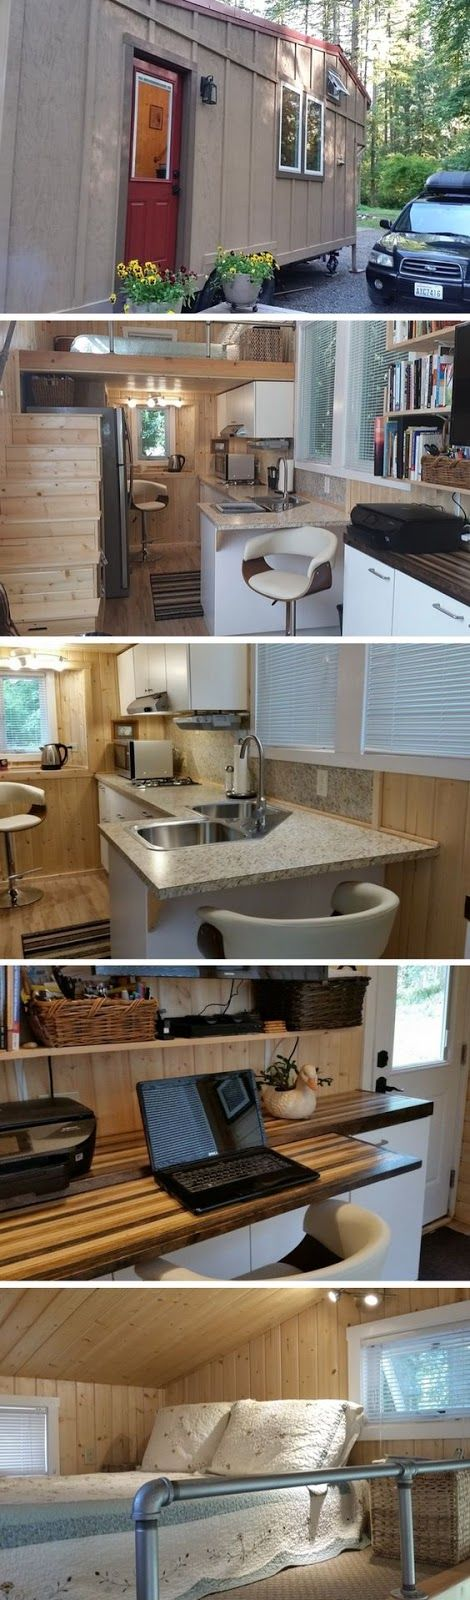 mytinyhousedirectory: Daniel Miller Tiny House (243 Sq Ft) For Sale